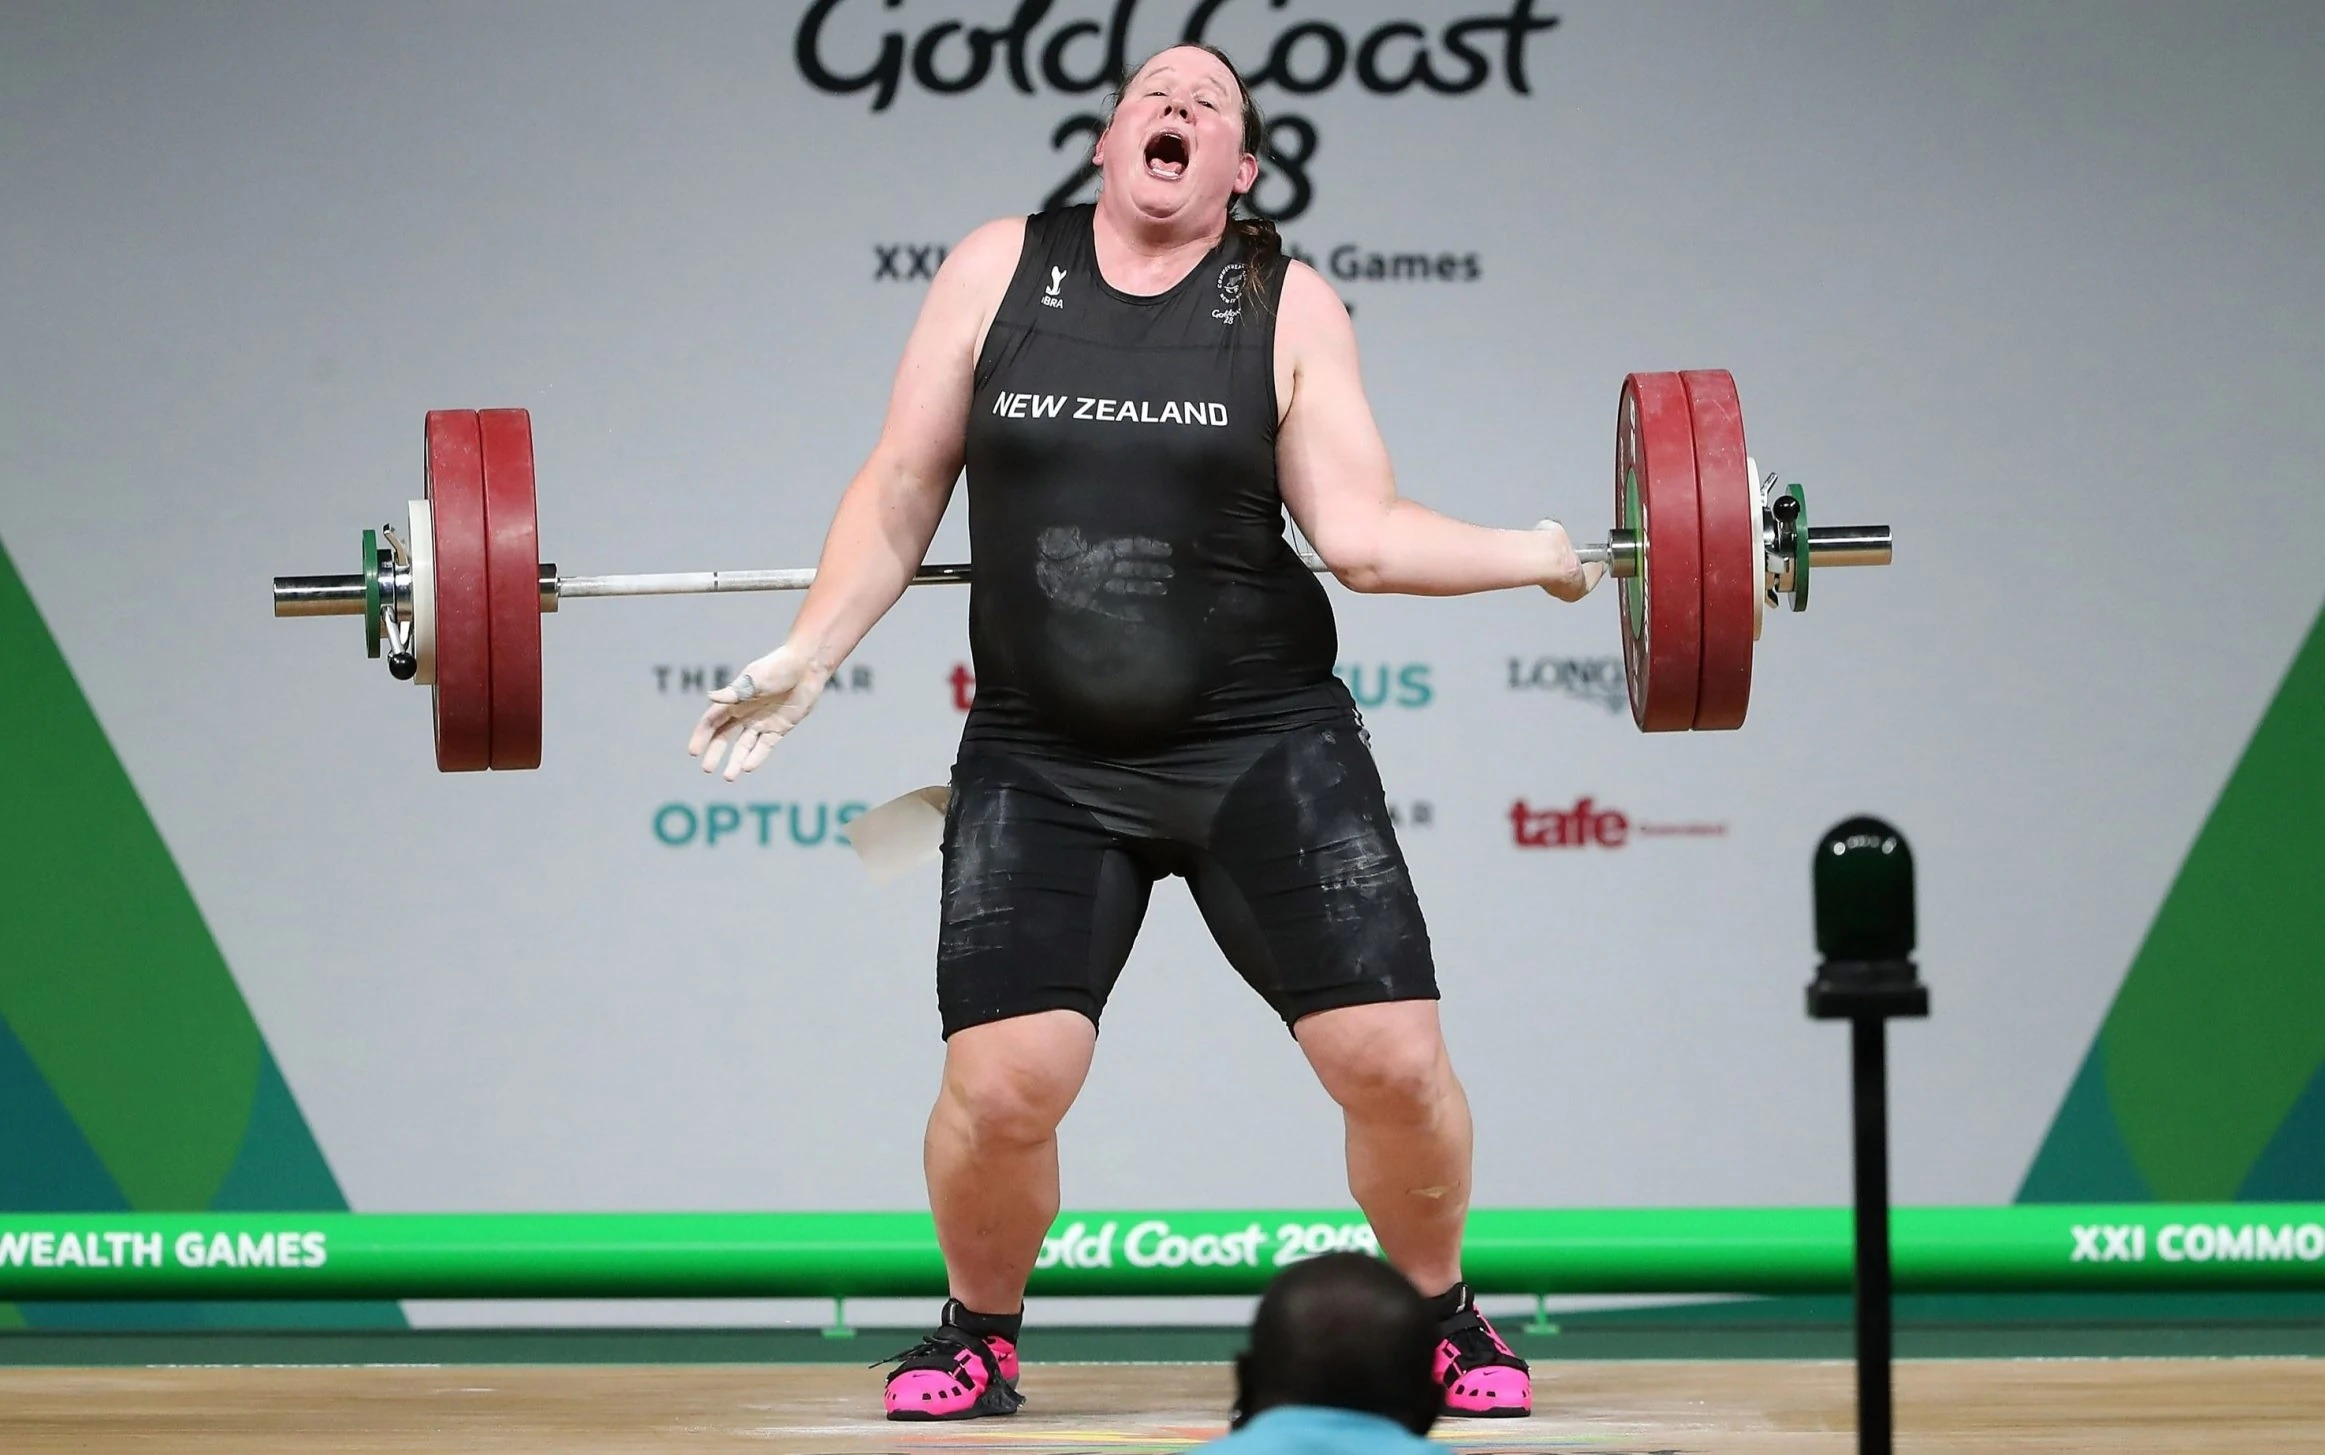 Untitled - 2 Gold Medals For Transgender Weightlifter - Is Fair Play In Sports Gone?